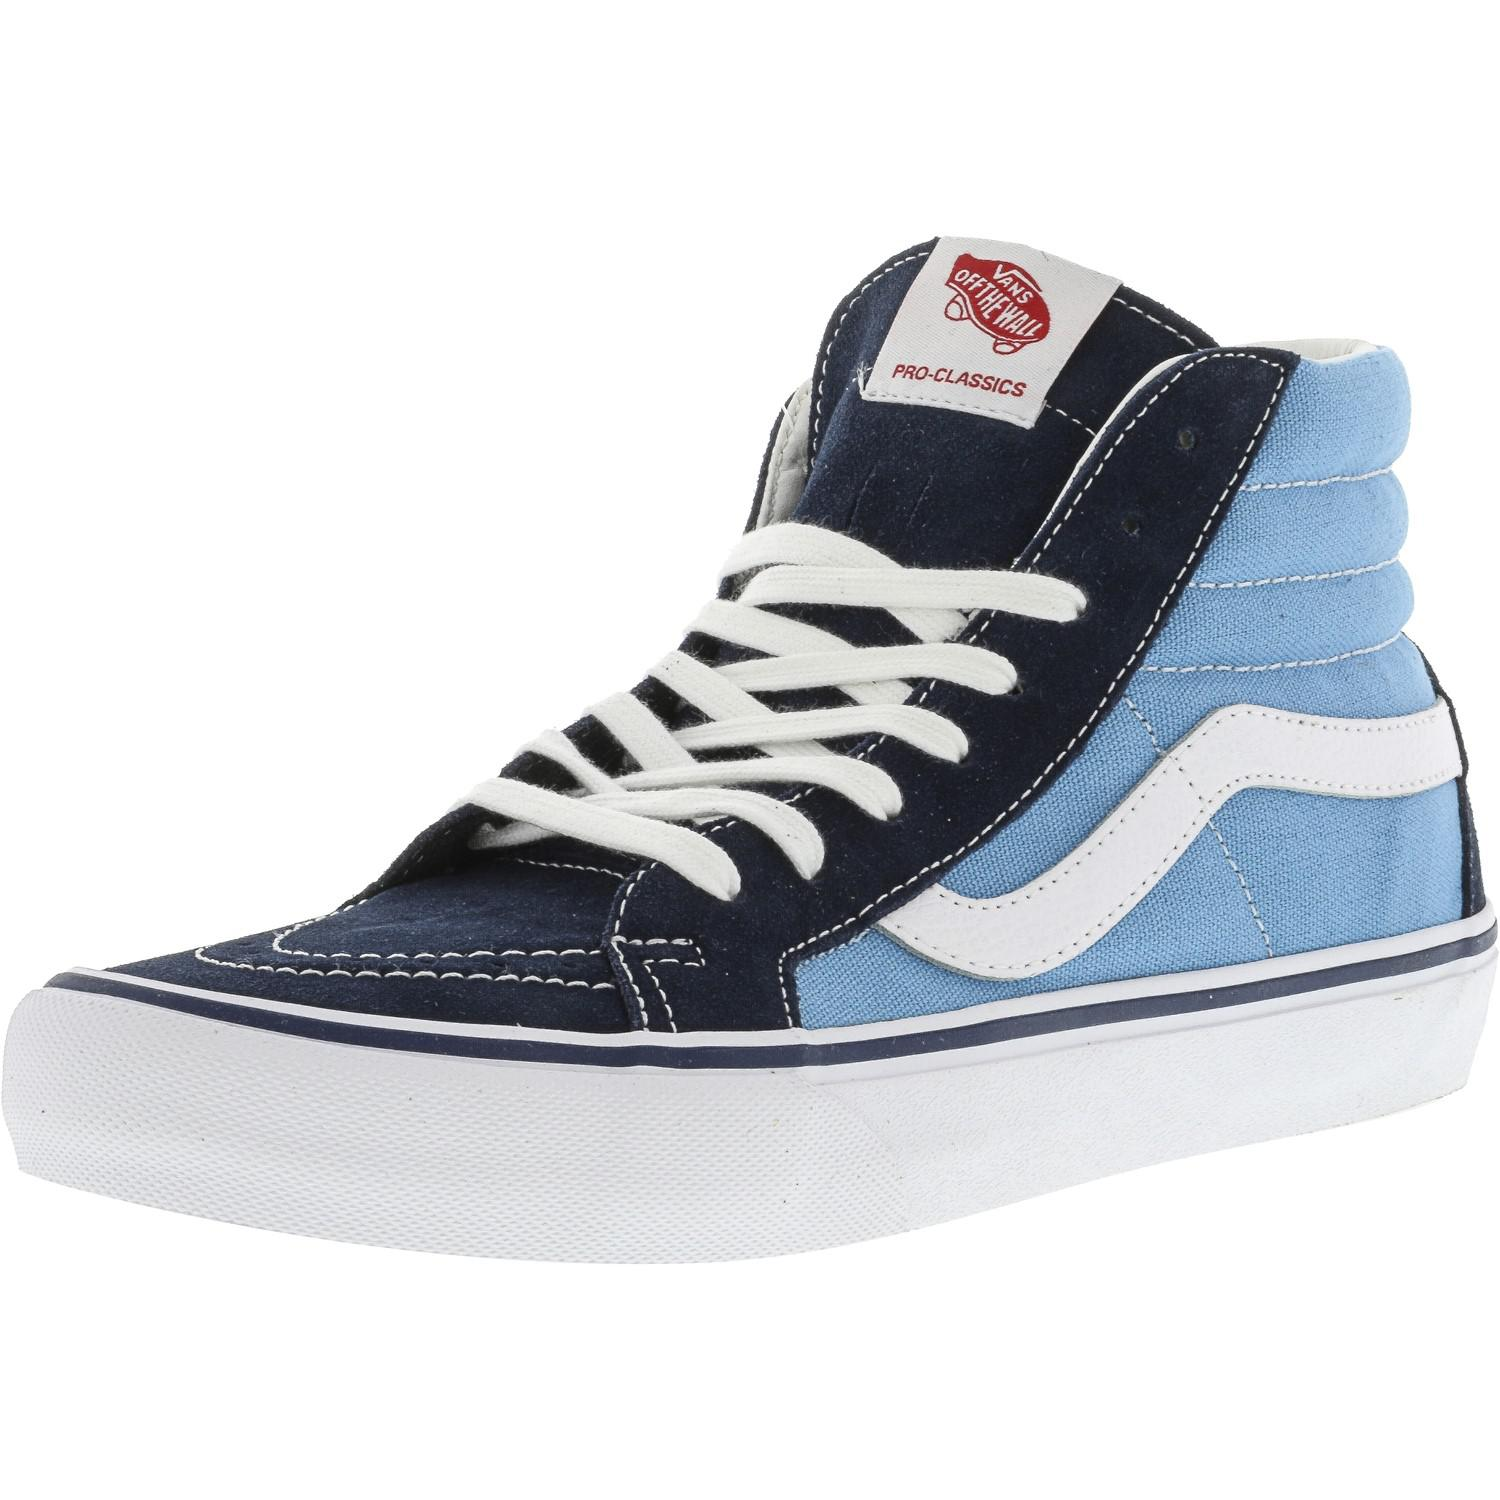 e2859cce1409df Lyst - Vans Sk8-hi Pro 50th 86 Navy   White Ankle-high Canvas ...